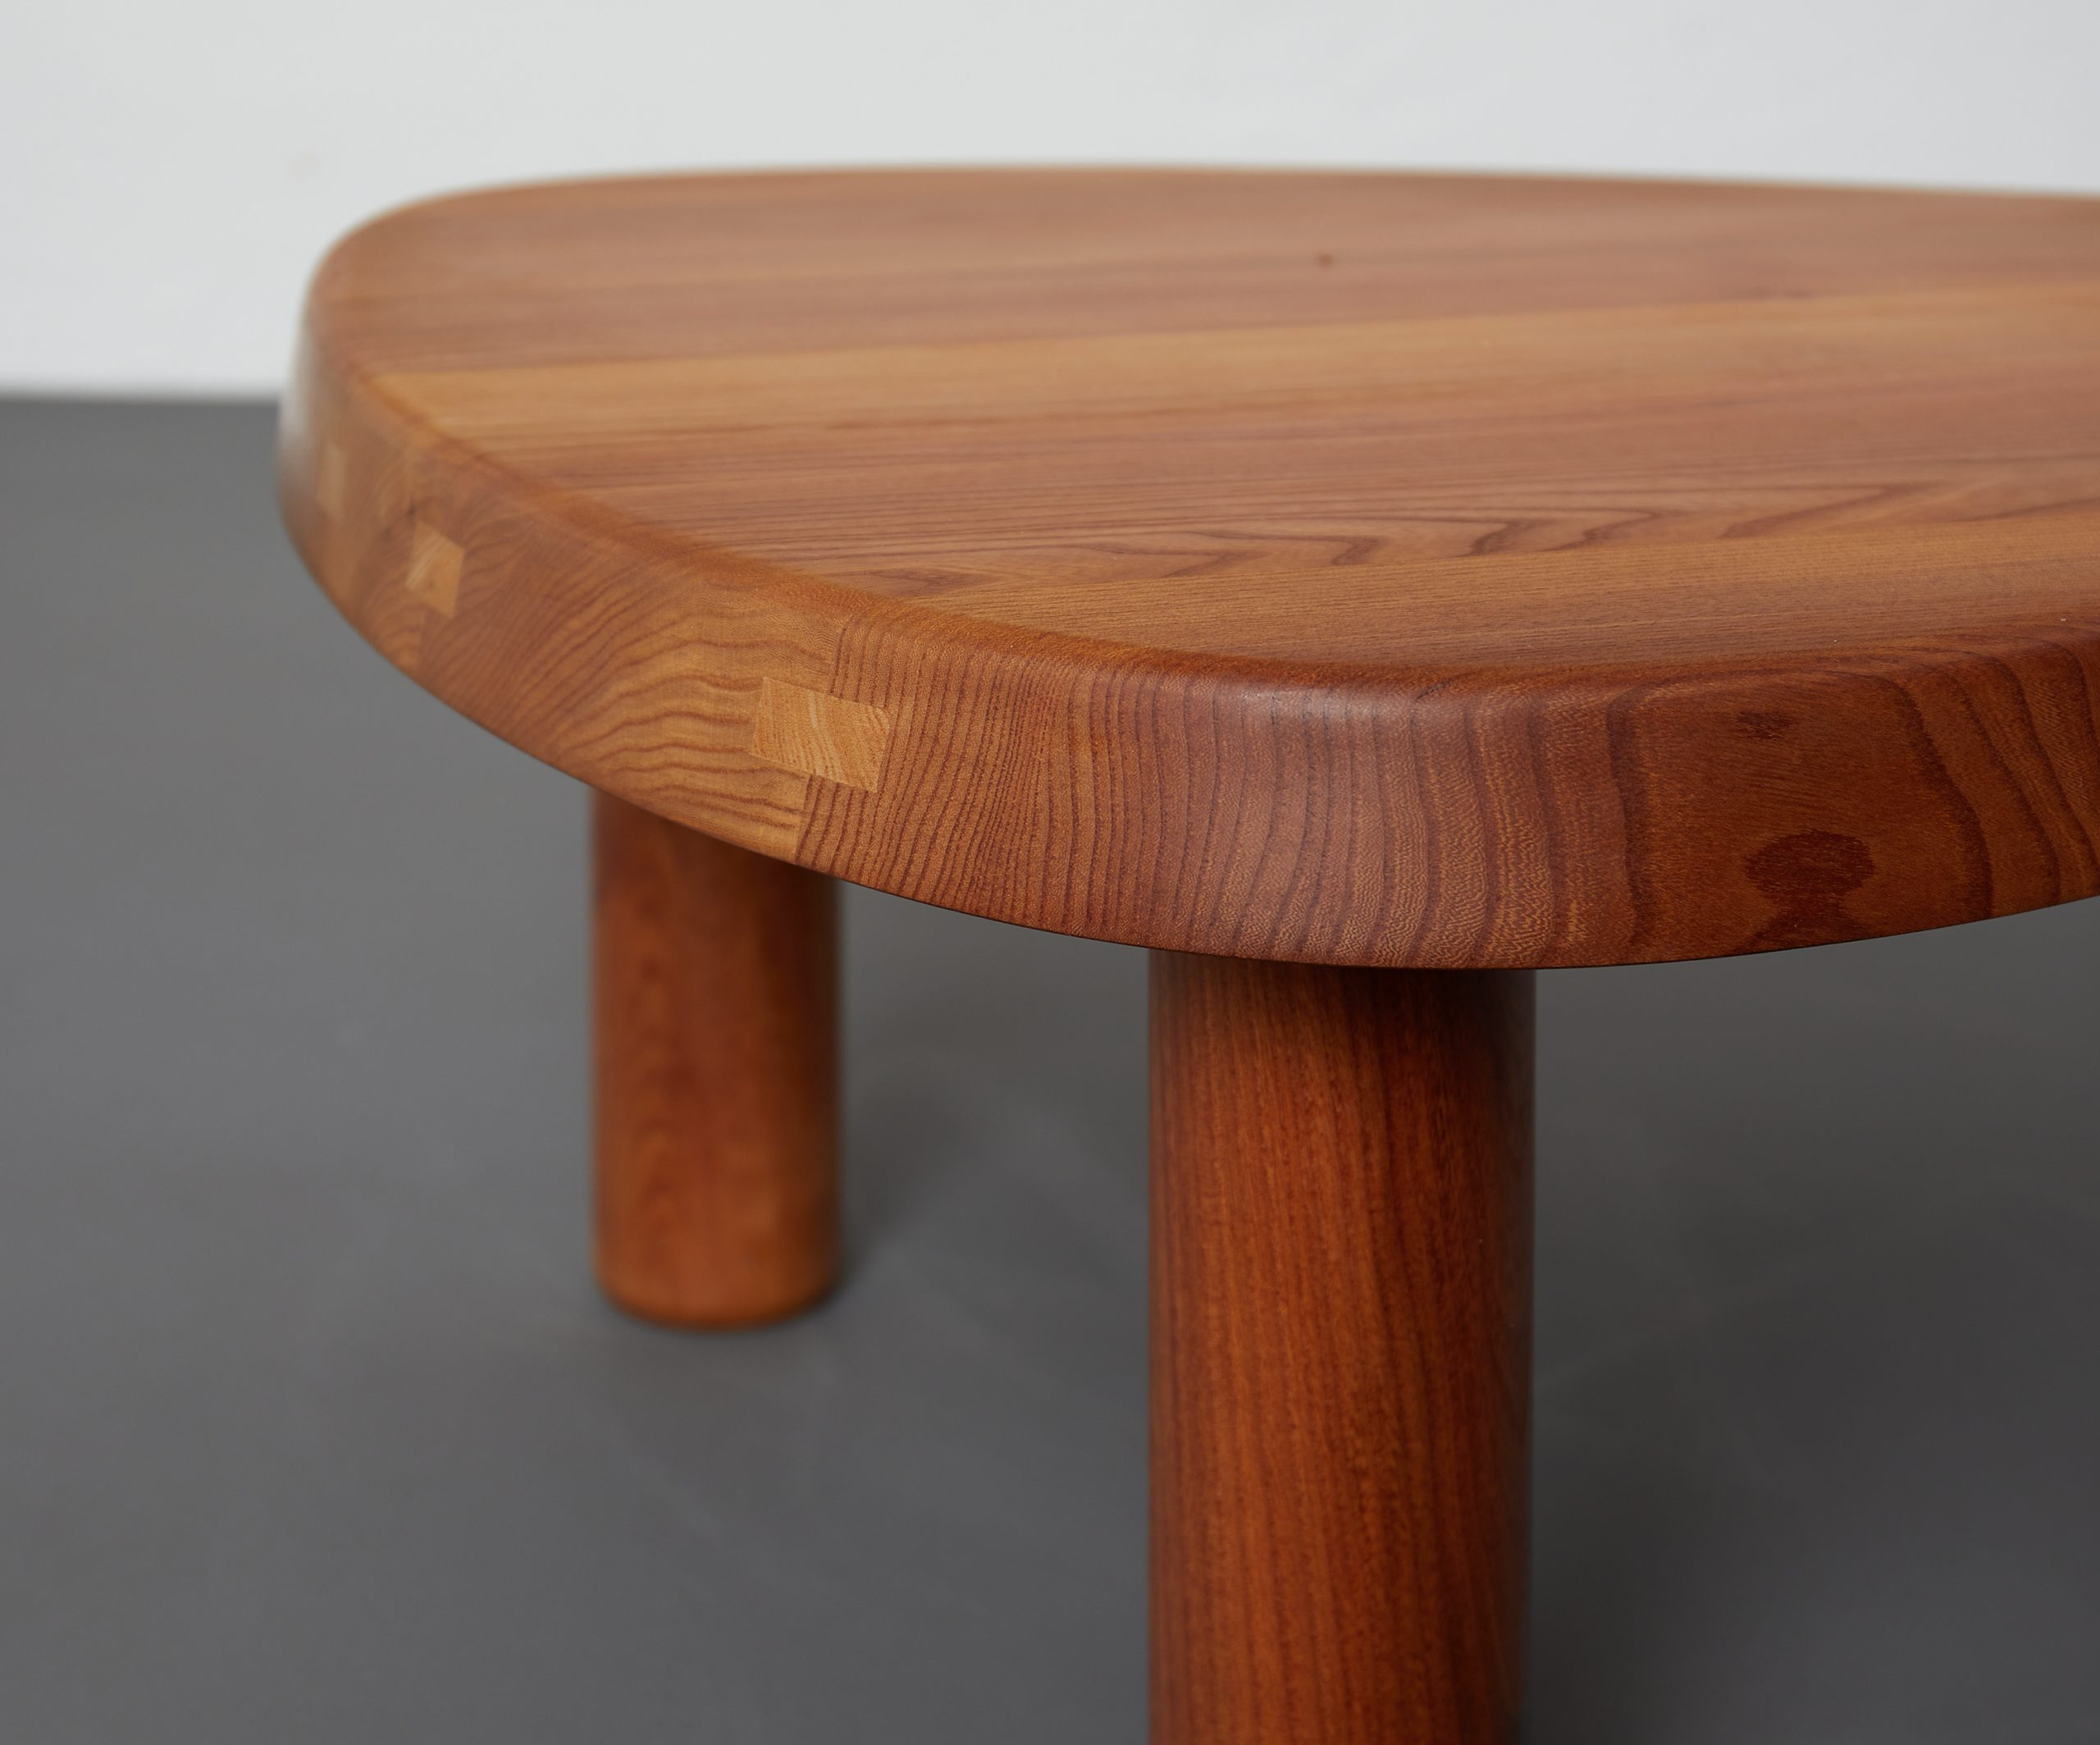 t23-table-by-pierre-chapo-image-04